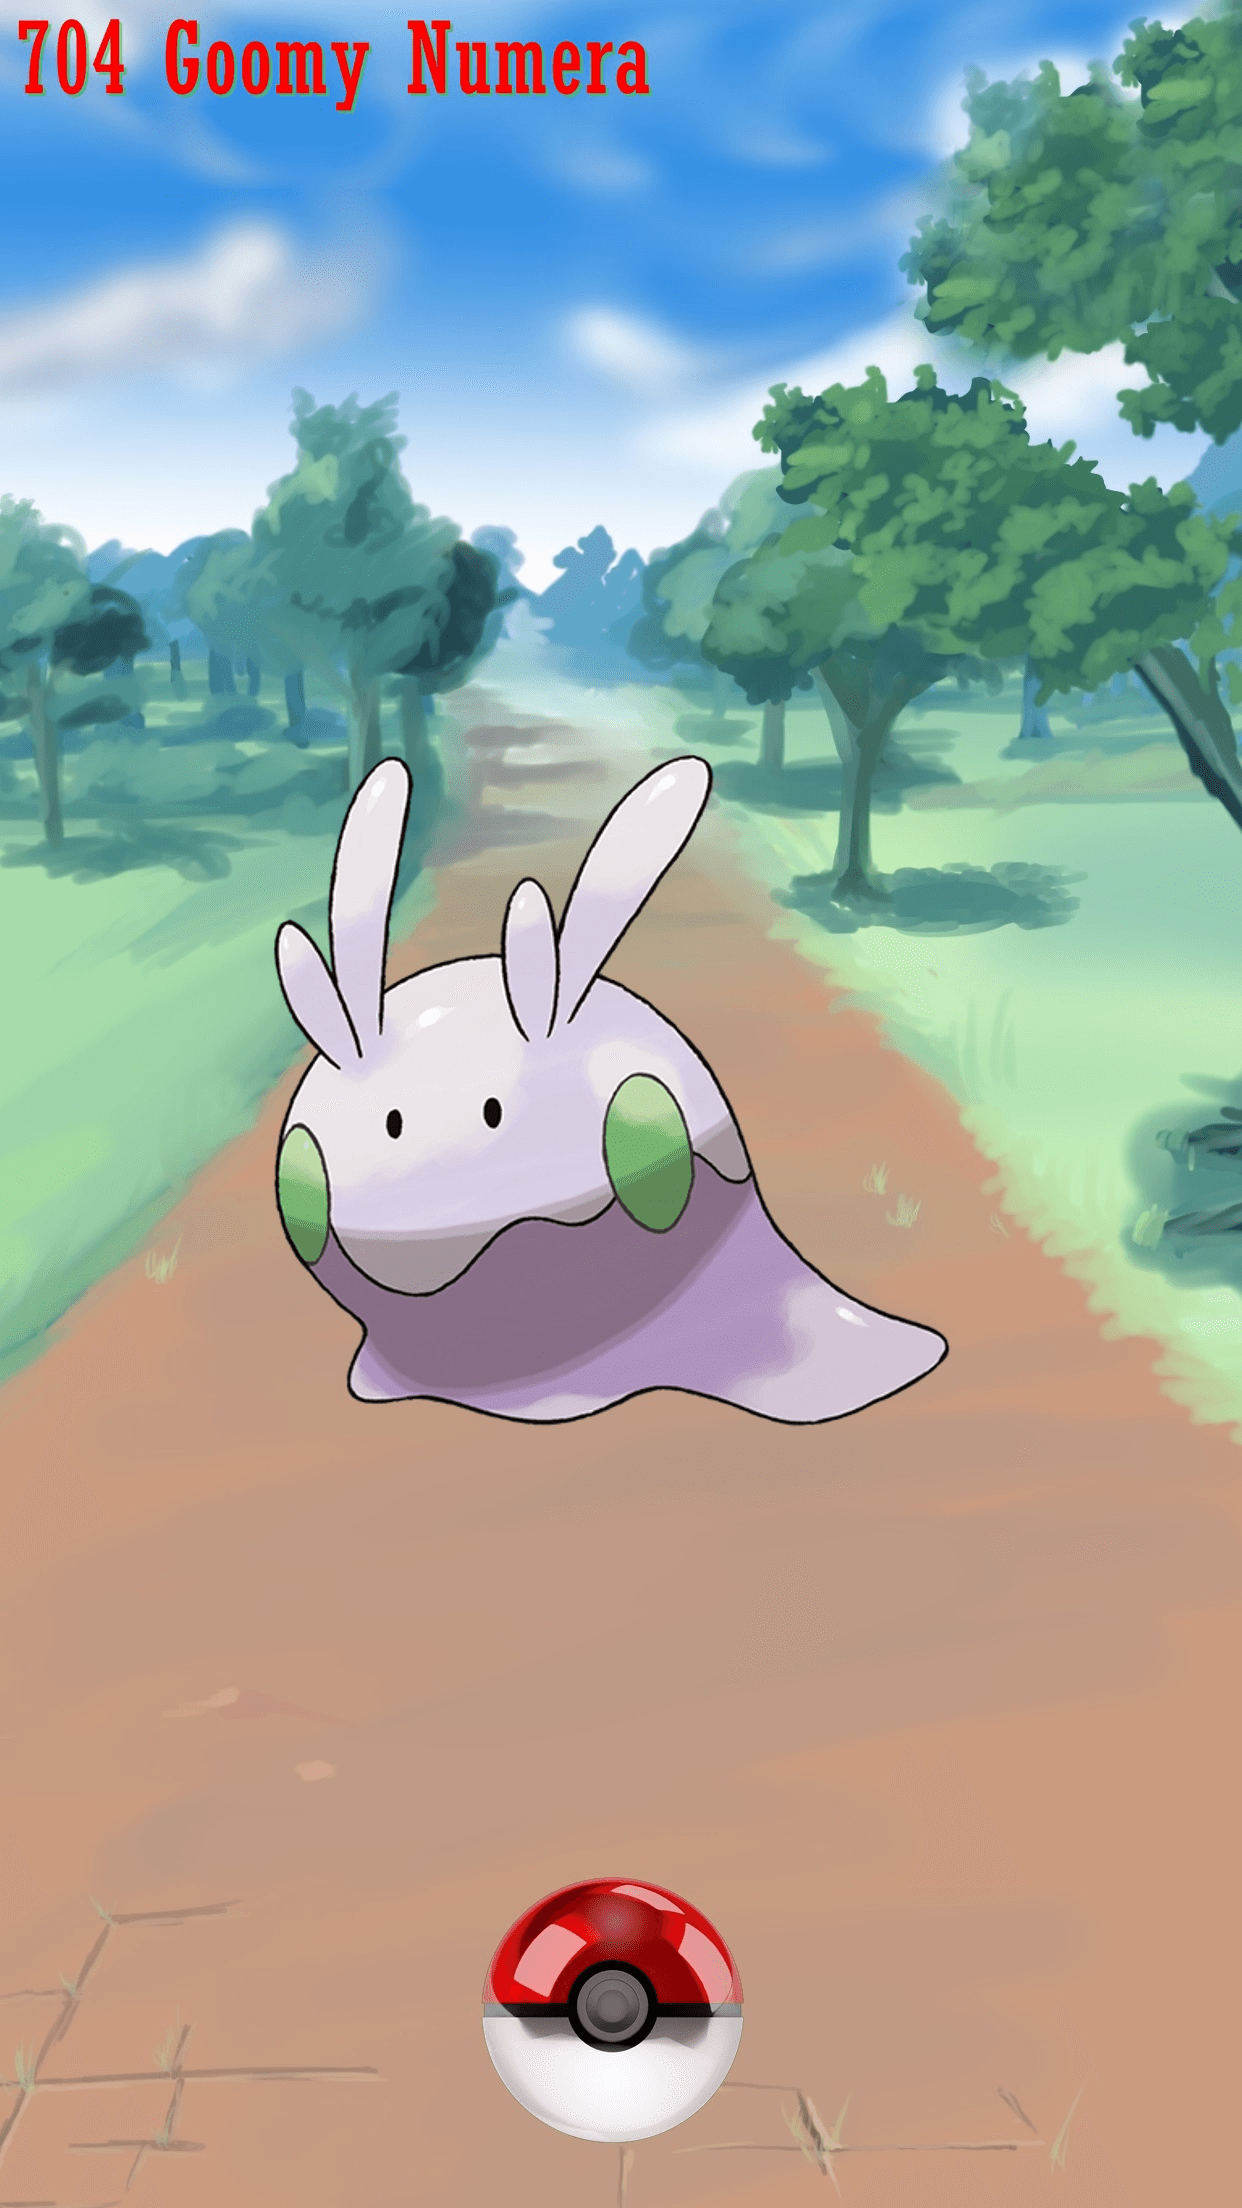 704 Street Pokeball Goomy Numera | Wallpaper